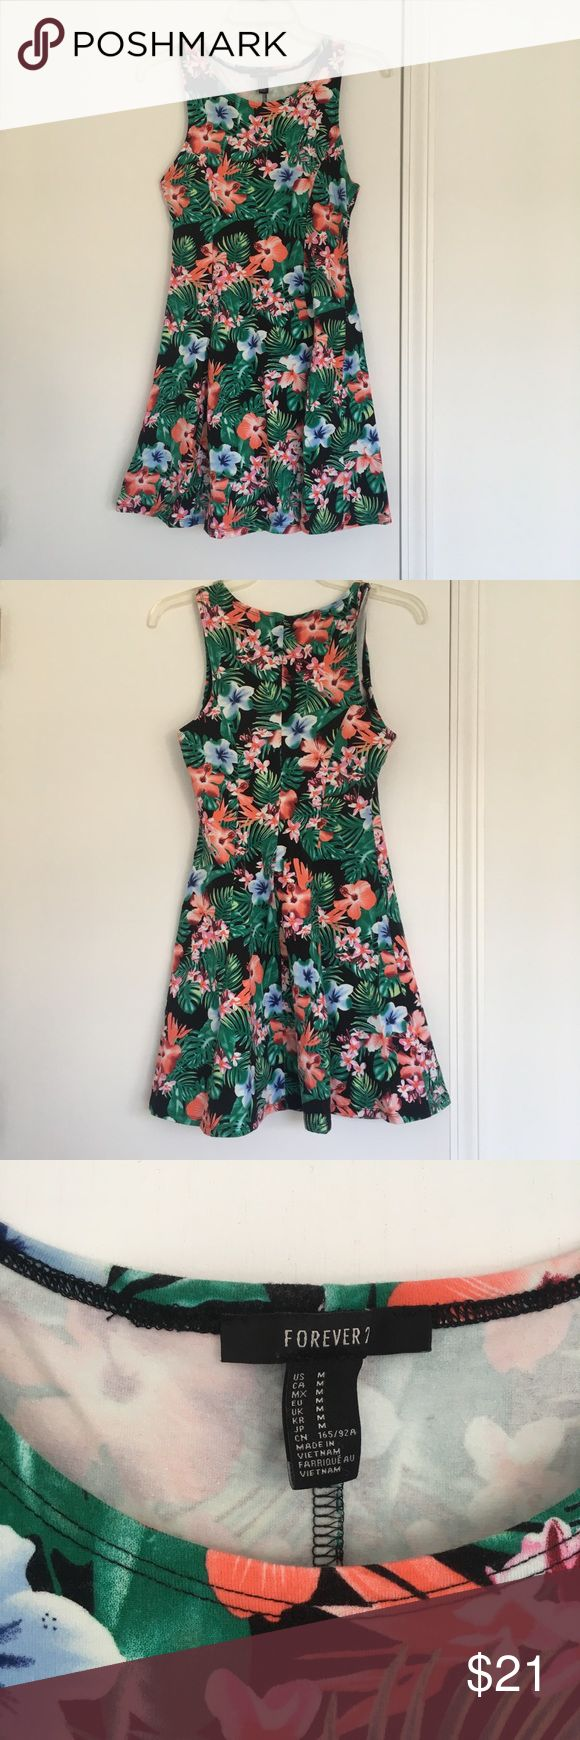 🌺 Tropical Print Floral A-Line Skater Dress 🌺 Amazing tropical print skater dress, fitted at waist, flaring out in the skirt.   Material is stretchy so it's super comfy.   Looks amazing with white sneaks and a pair of shades or under a hoodie or denim jacket!  Size M.  Contents: 96% Cotton, 4% Spandex/Elastane Condition: Very good. Worn a couple of times but no noticeable wear. Forever 21 Dresses